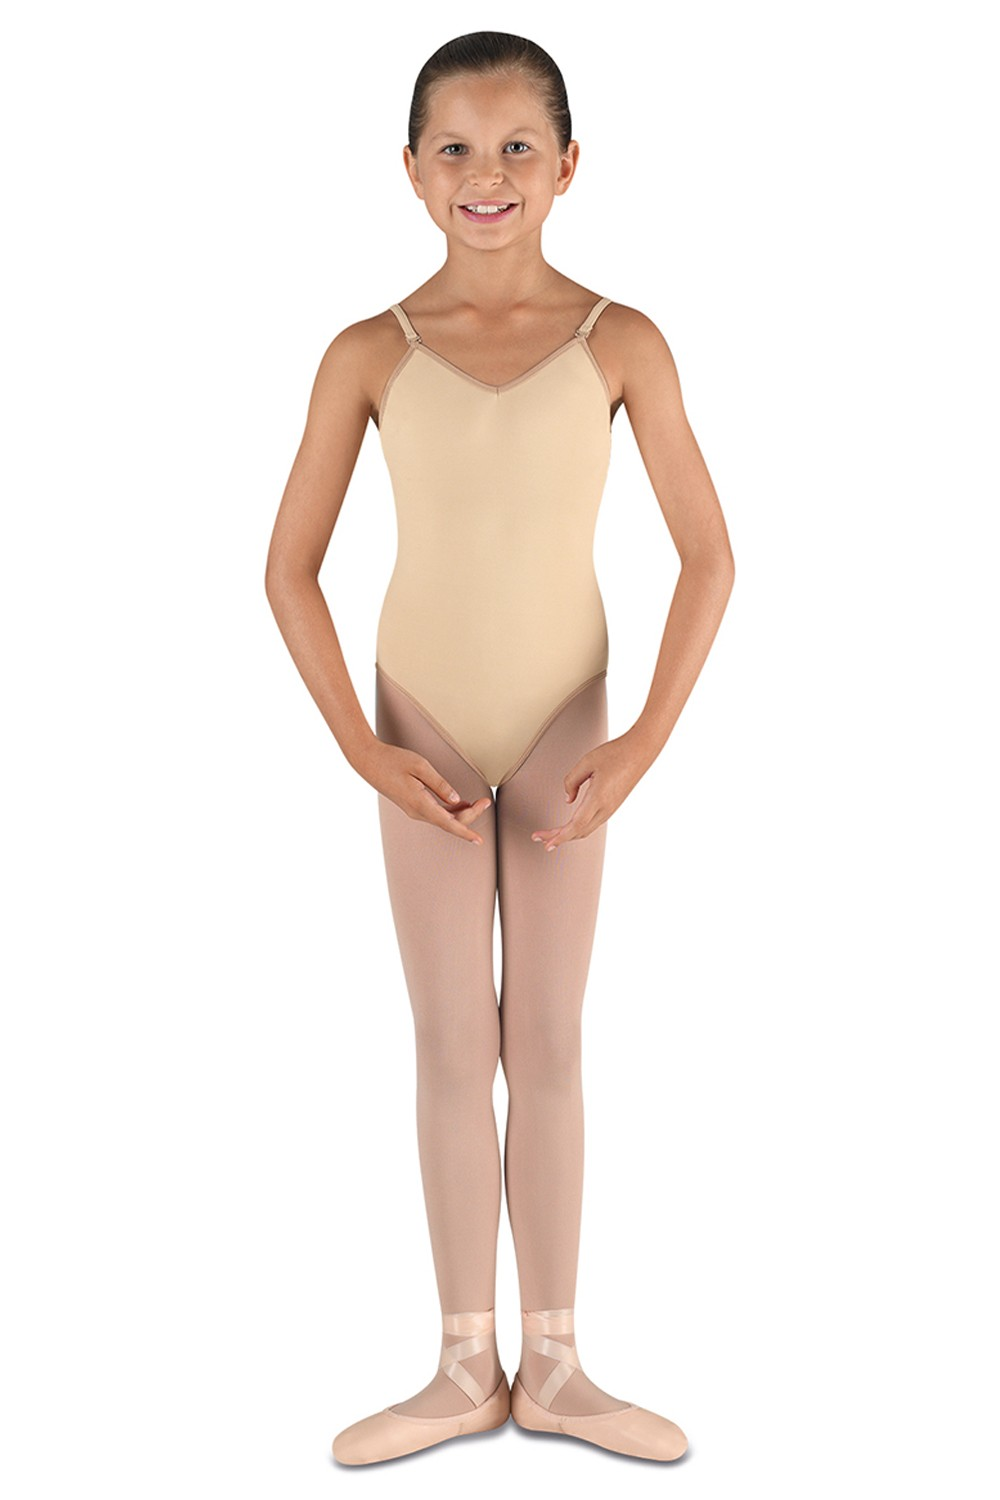 Scorpio Children's Dance Leotards